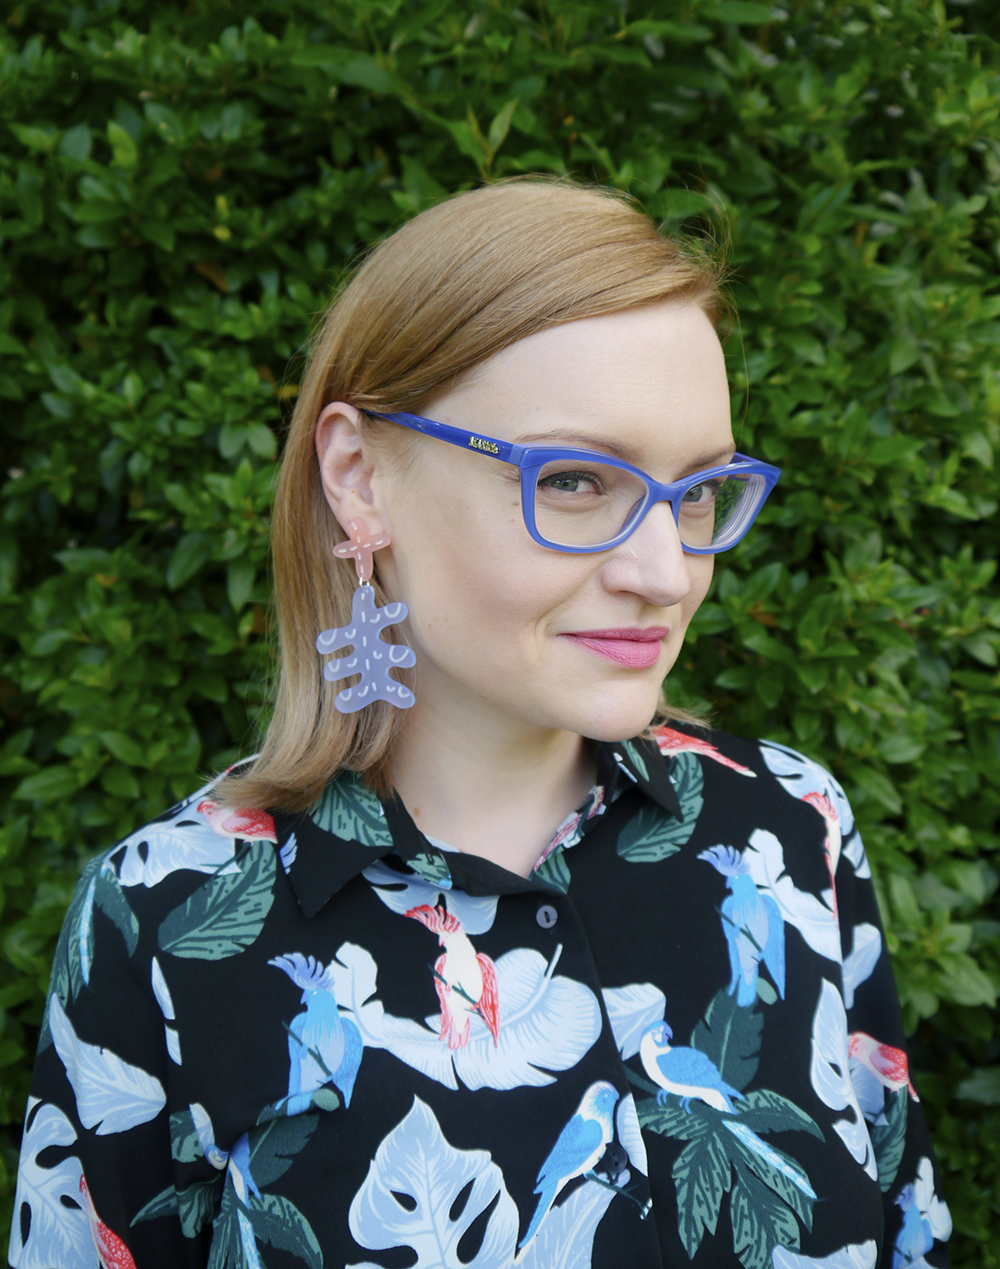 lue Max and Co. from Specsavers glasses paired with Julia de Klerk earrings